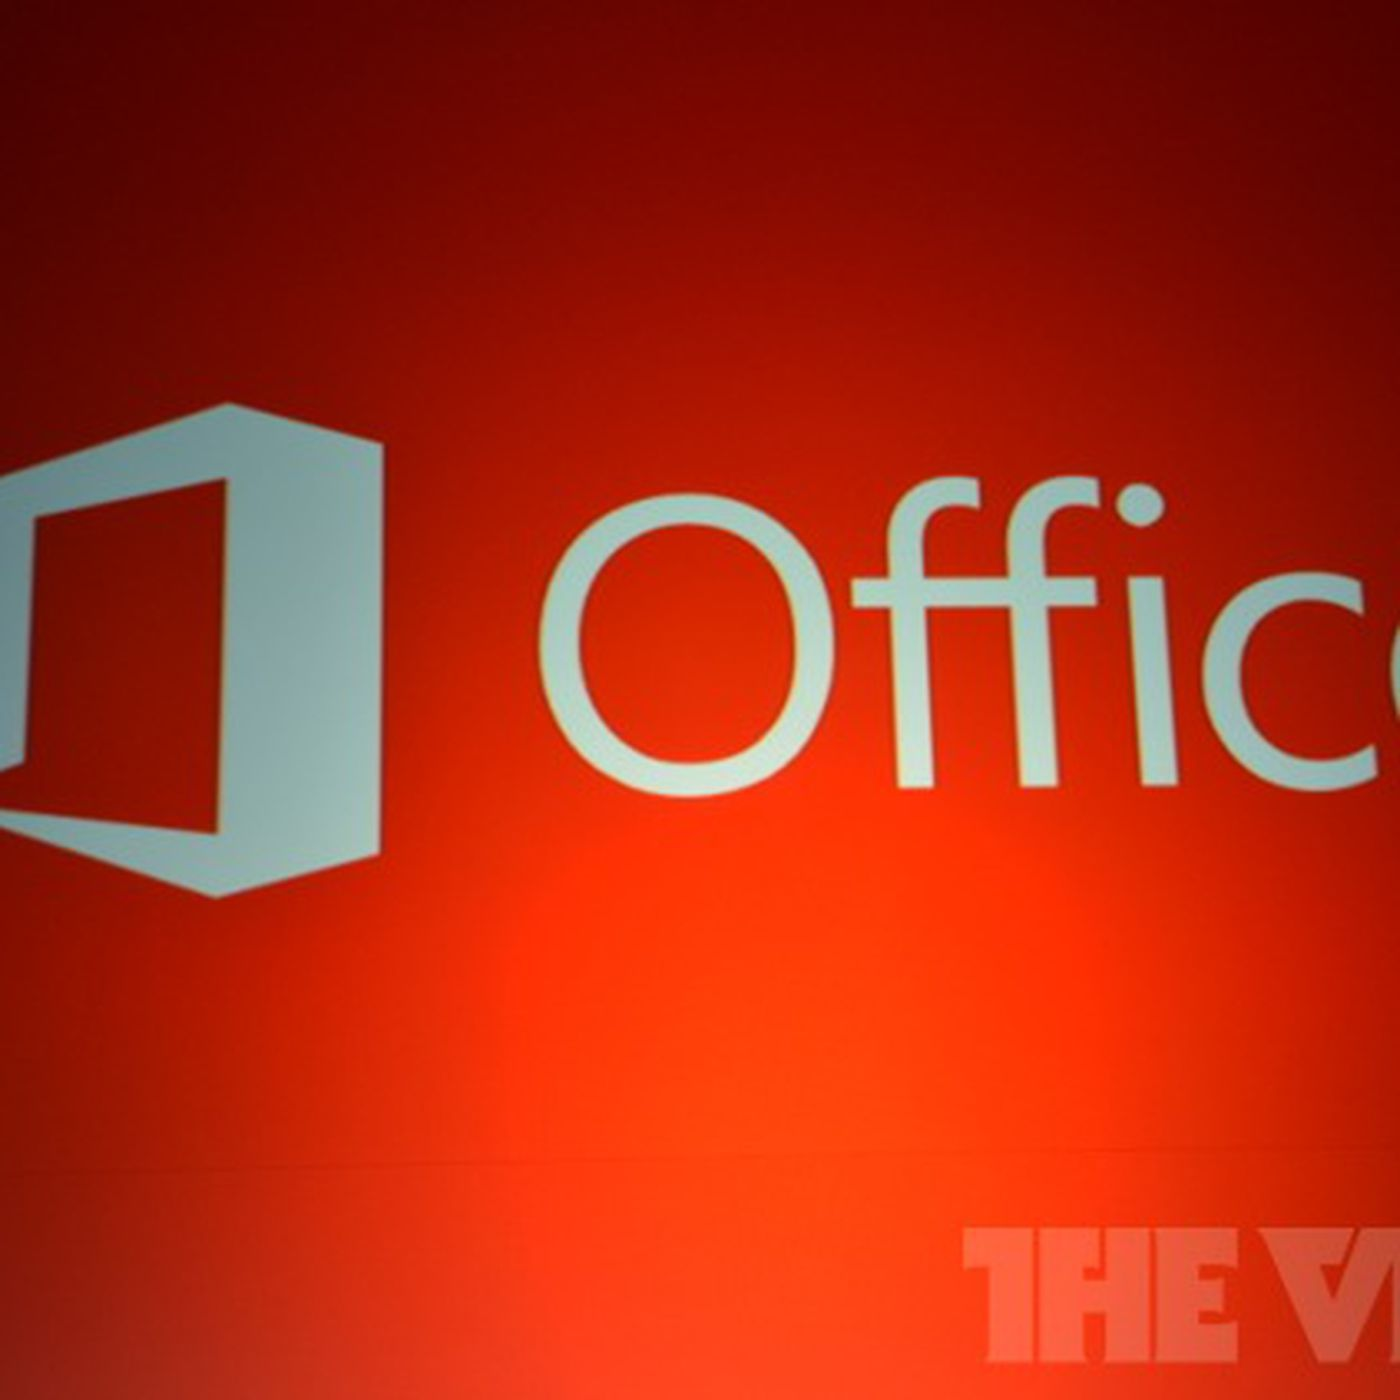 Microsoft's latest experimental app adds voice dictation to